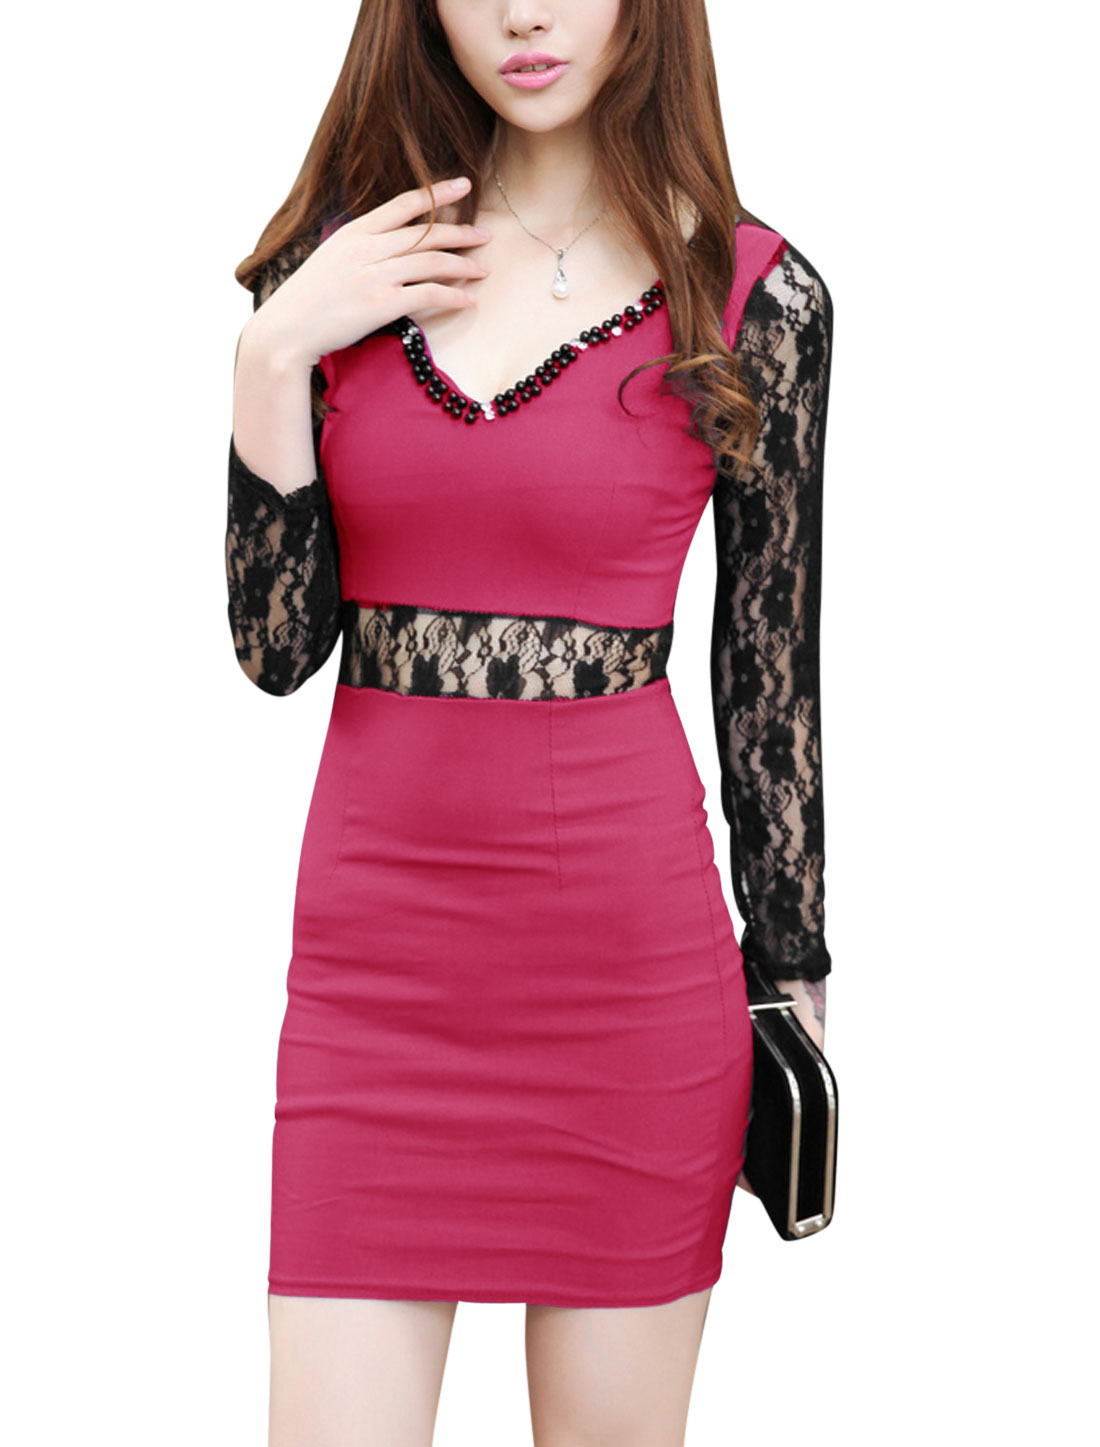 Women Scalloped Neck Lace Splicing Long Sleeves Sexy Sheath Dress Fuchsia XS